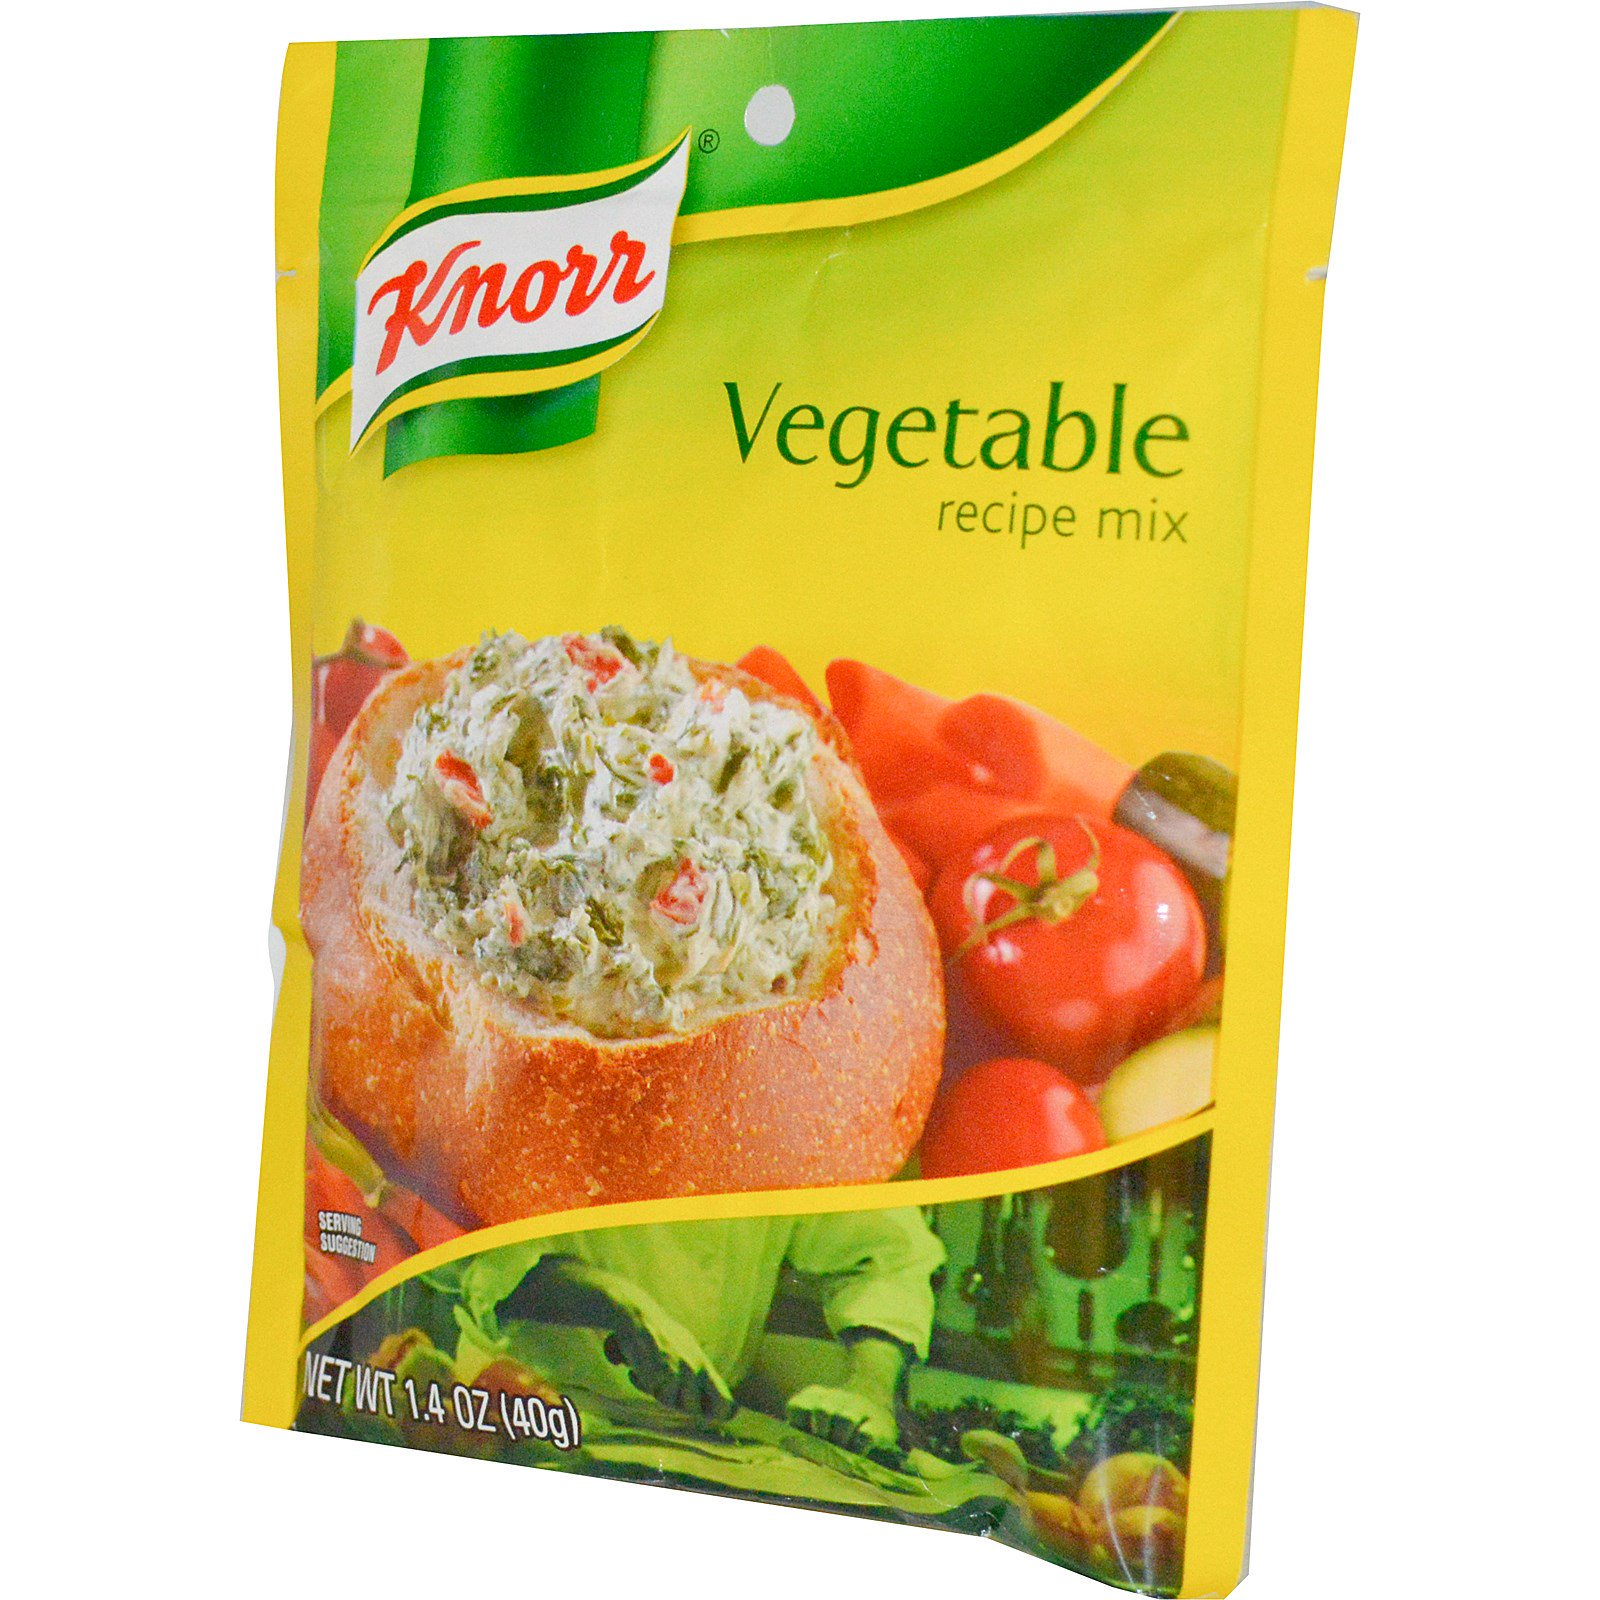 Knorr, Vegetable Recipe Mix, 1.4 oz(pack of 4)